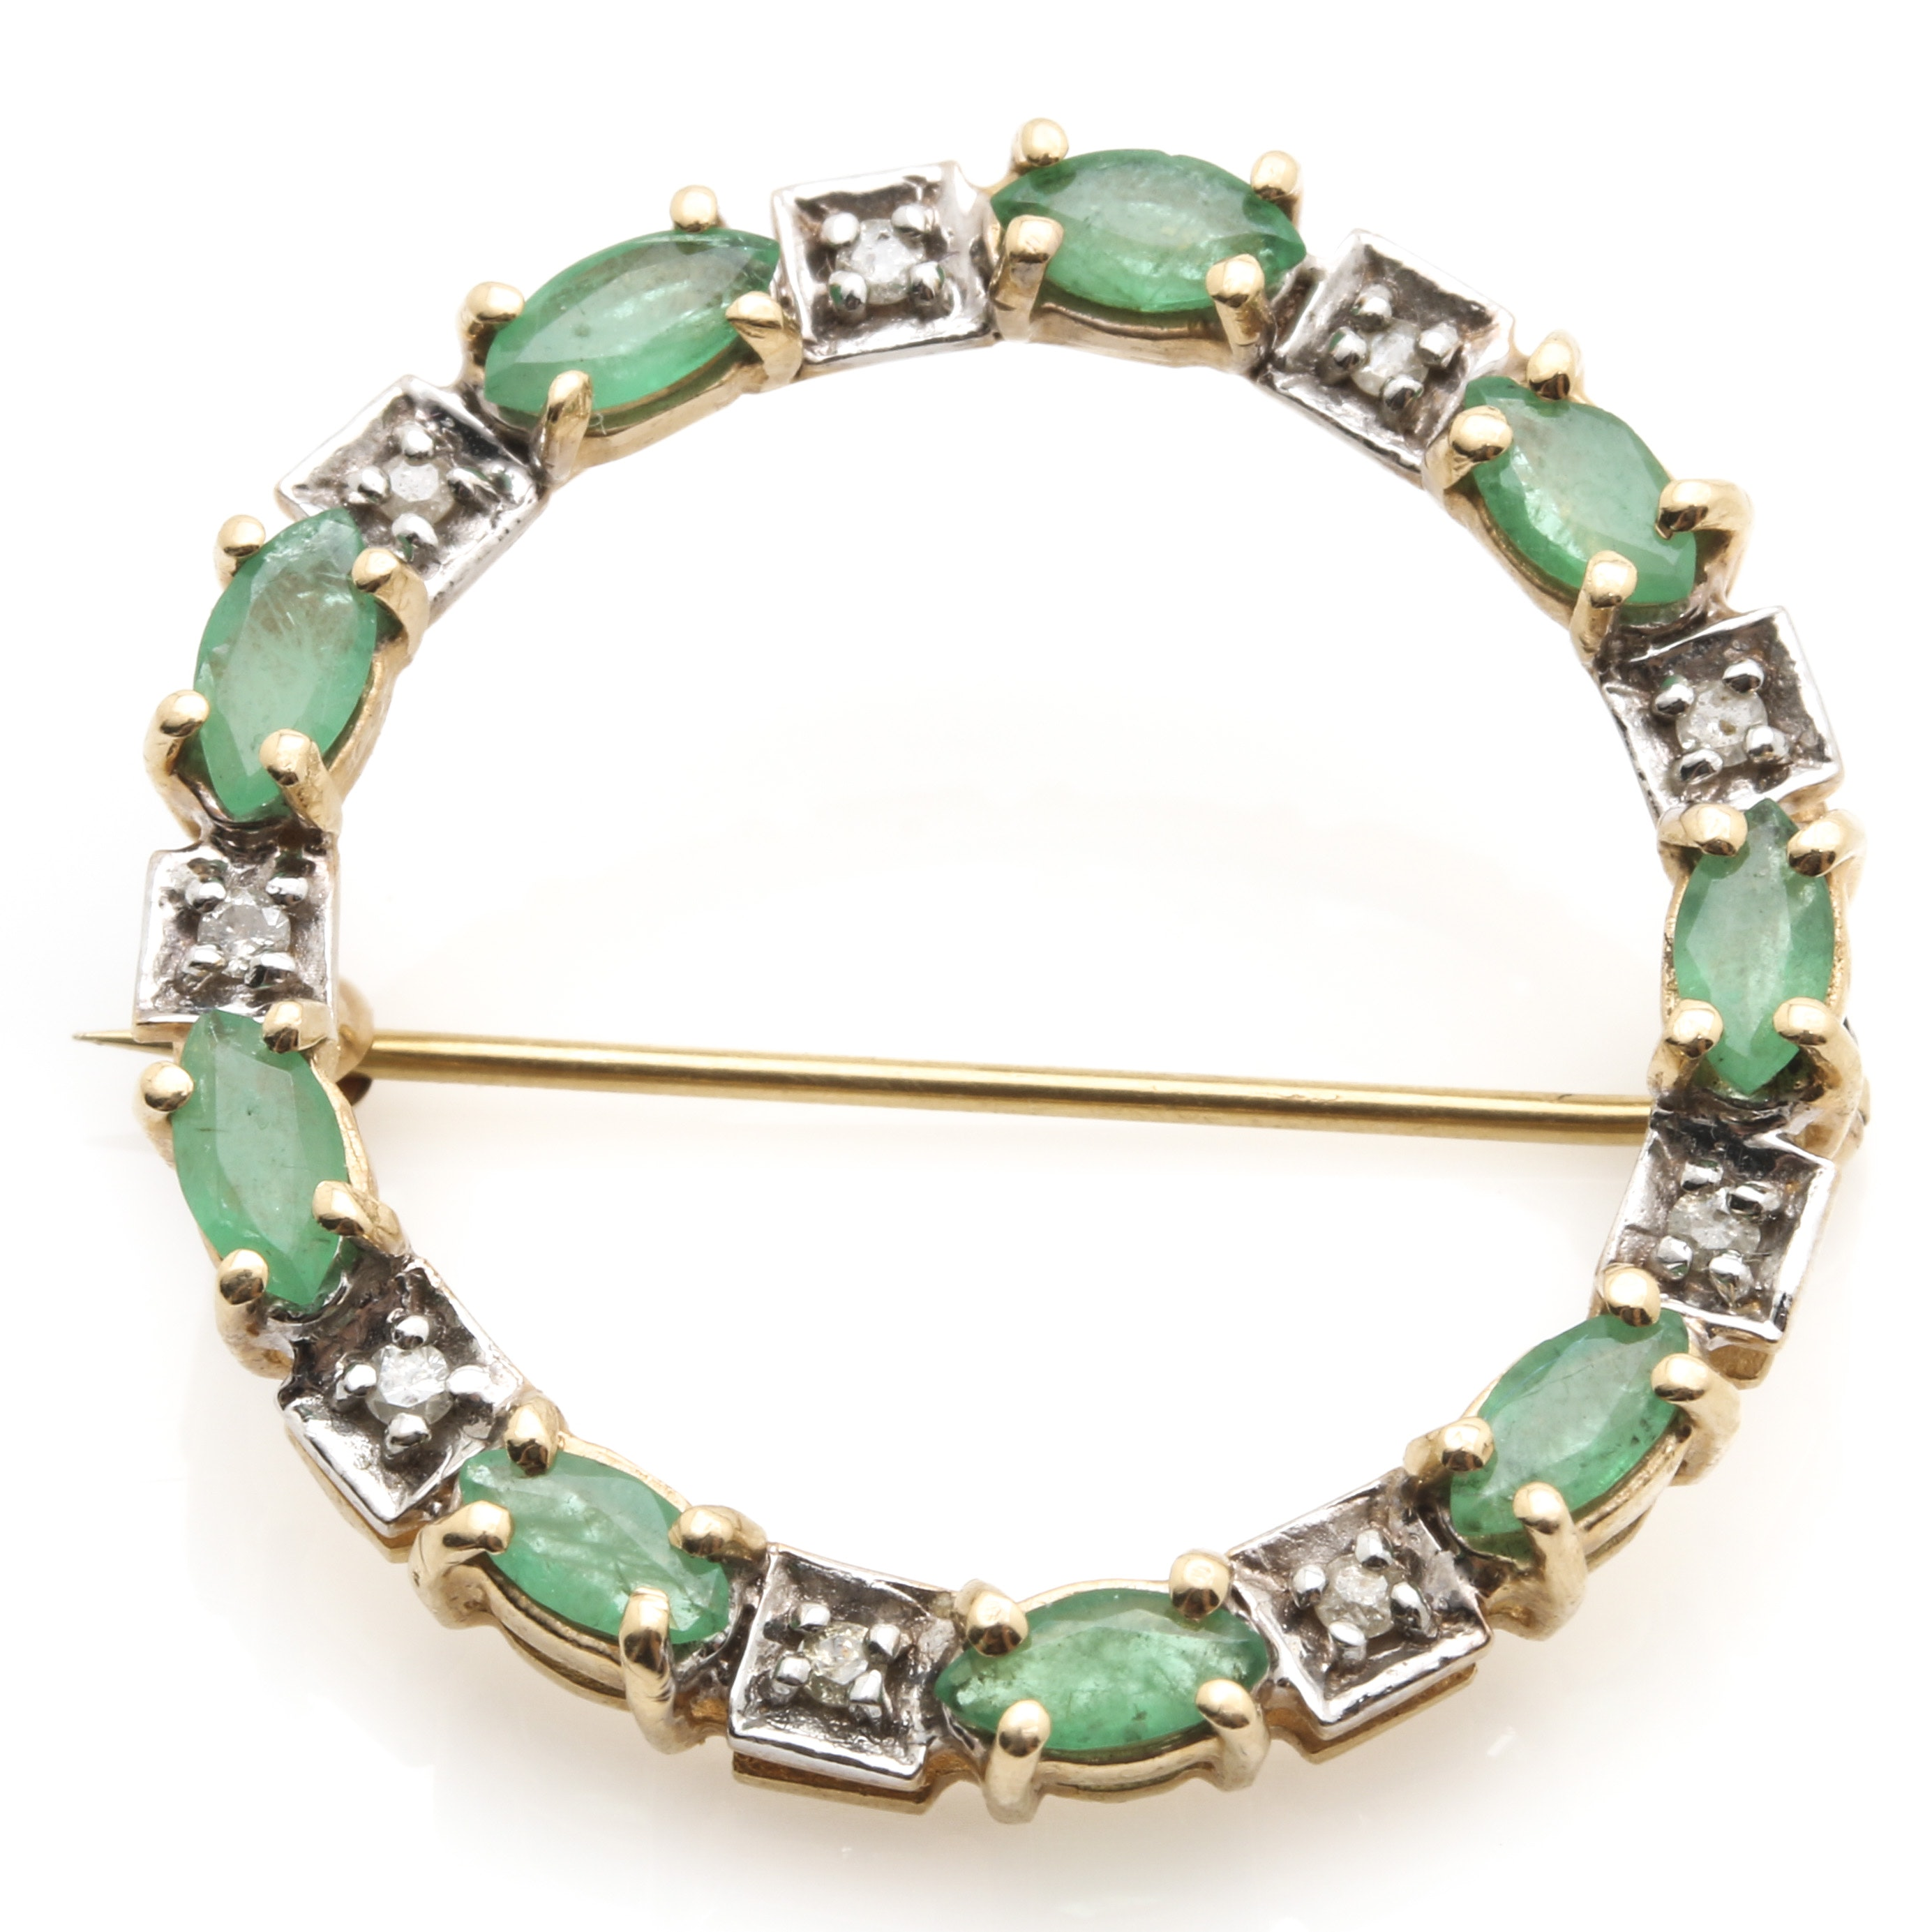 14K Yellow Gold 1.19 CTW Emerald and Diamond Wreath Brooch